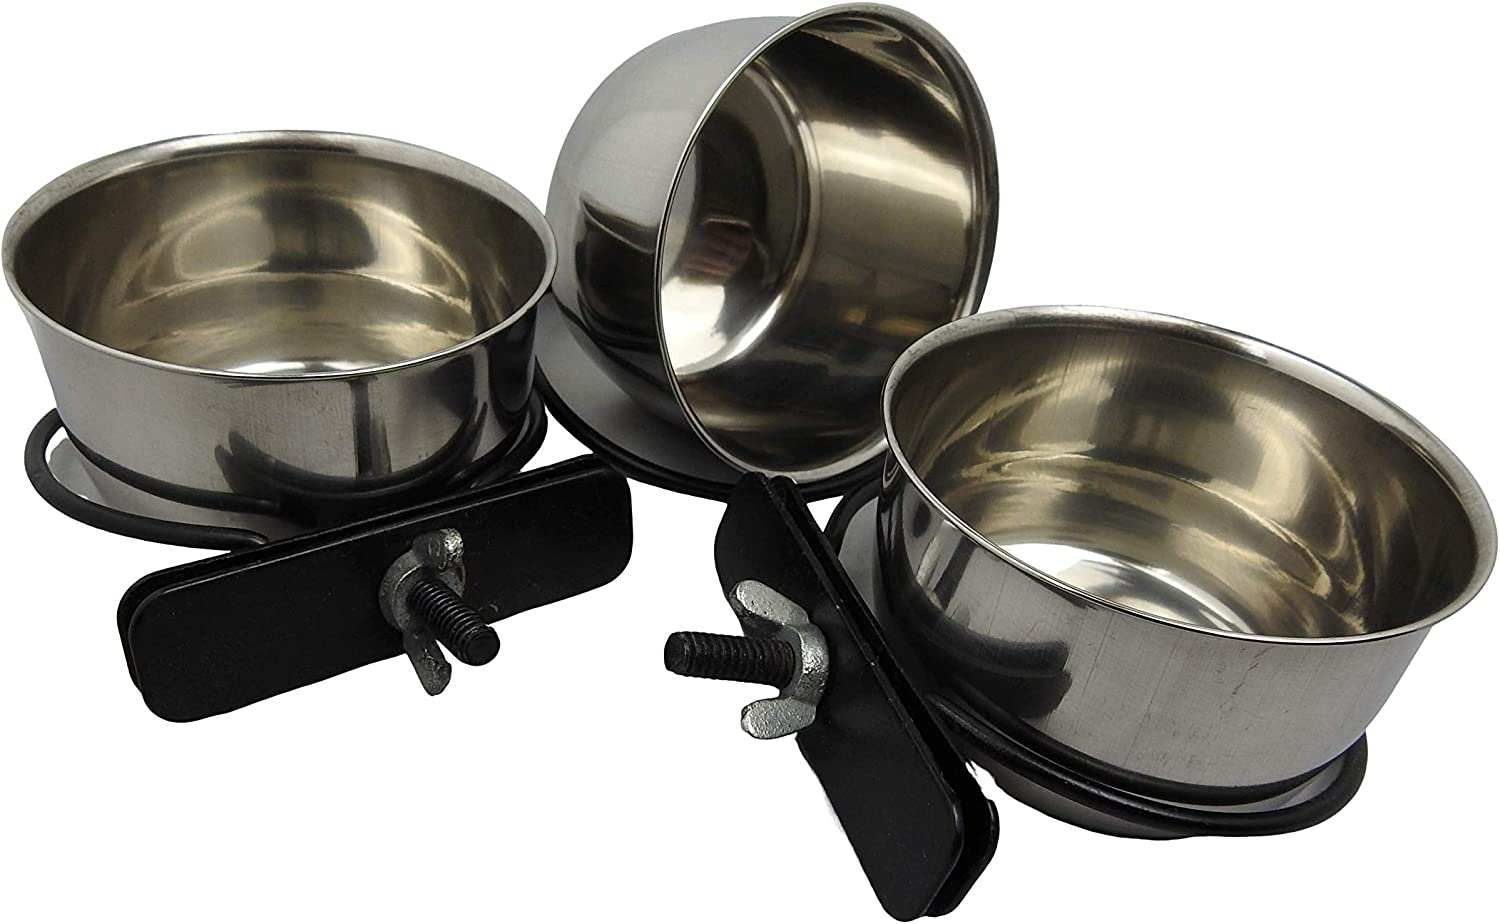 Clamp Style Stainless Steel 5 oz Hanging pet Bowl / Cup / Dish for Food and Water (3 Pack)